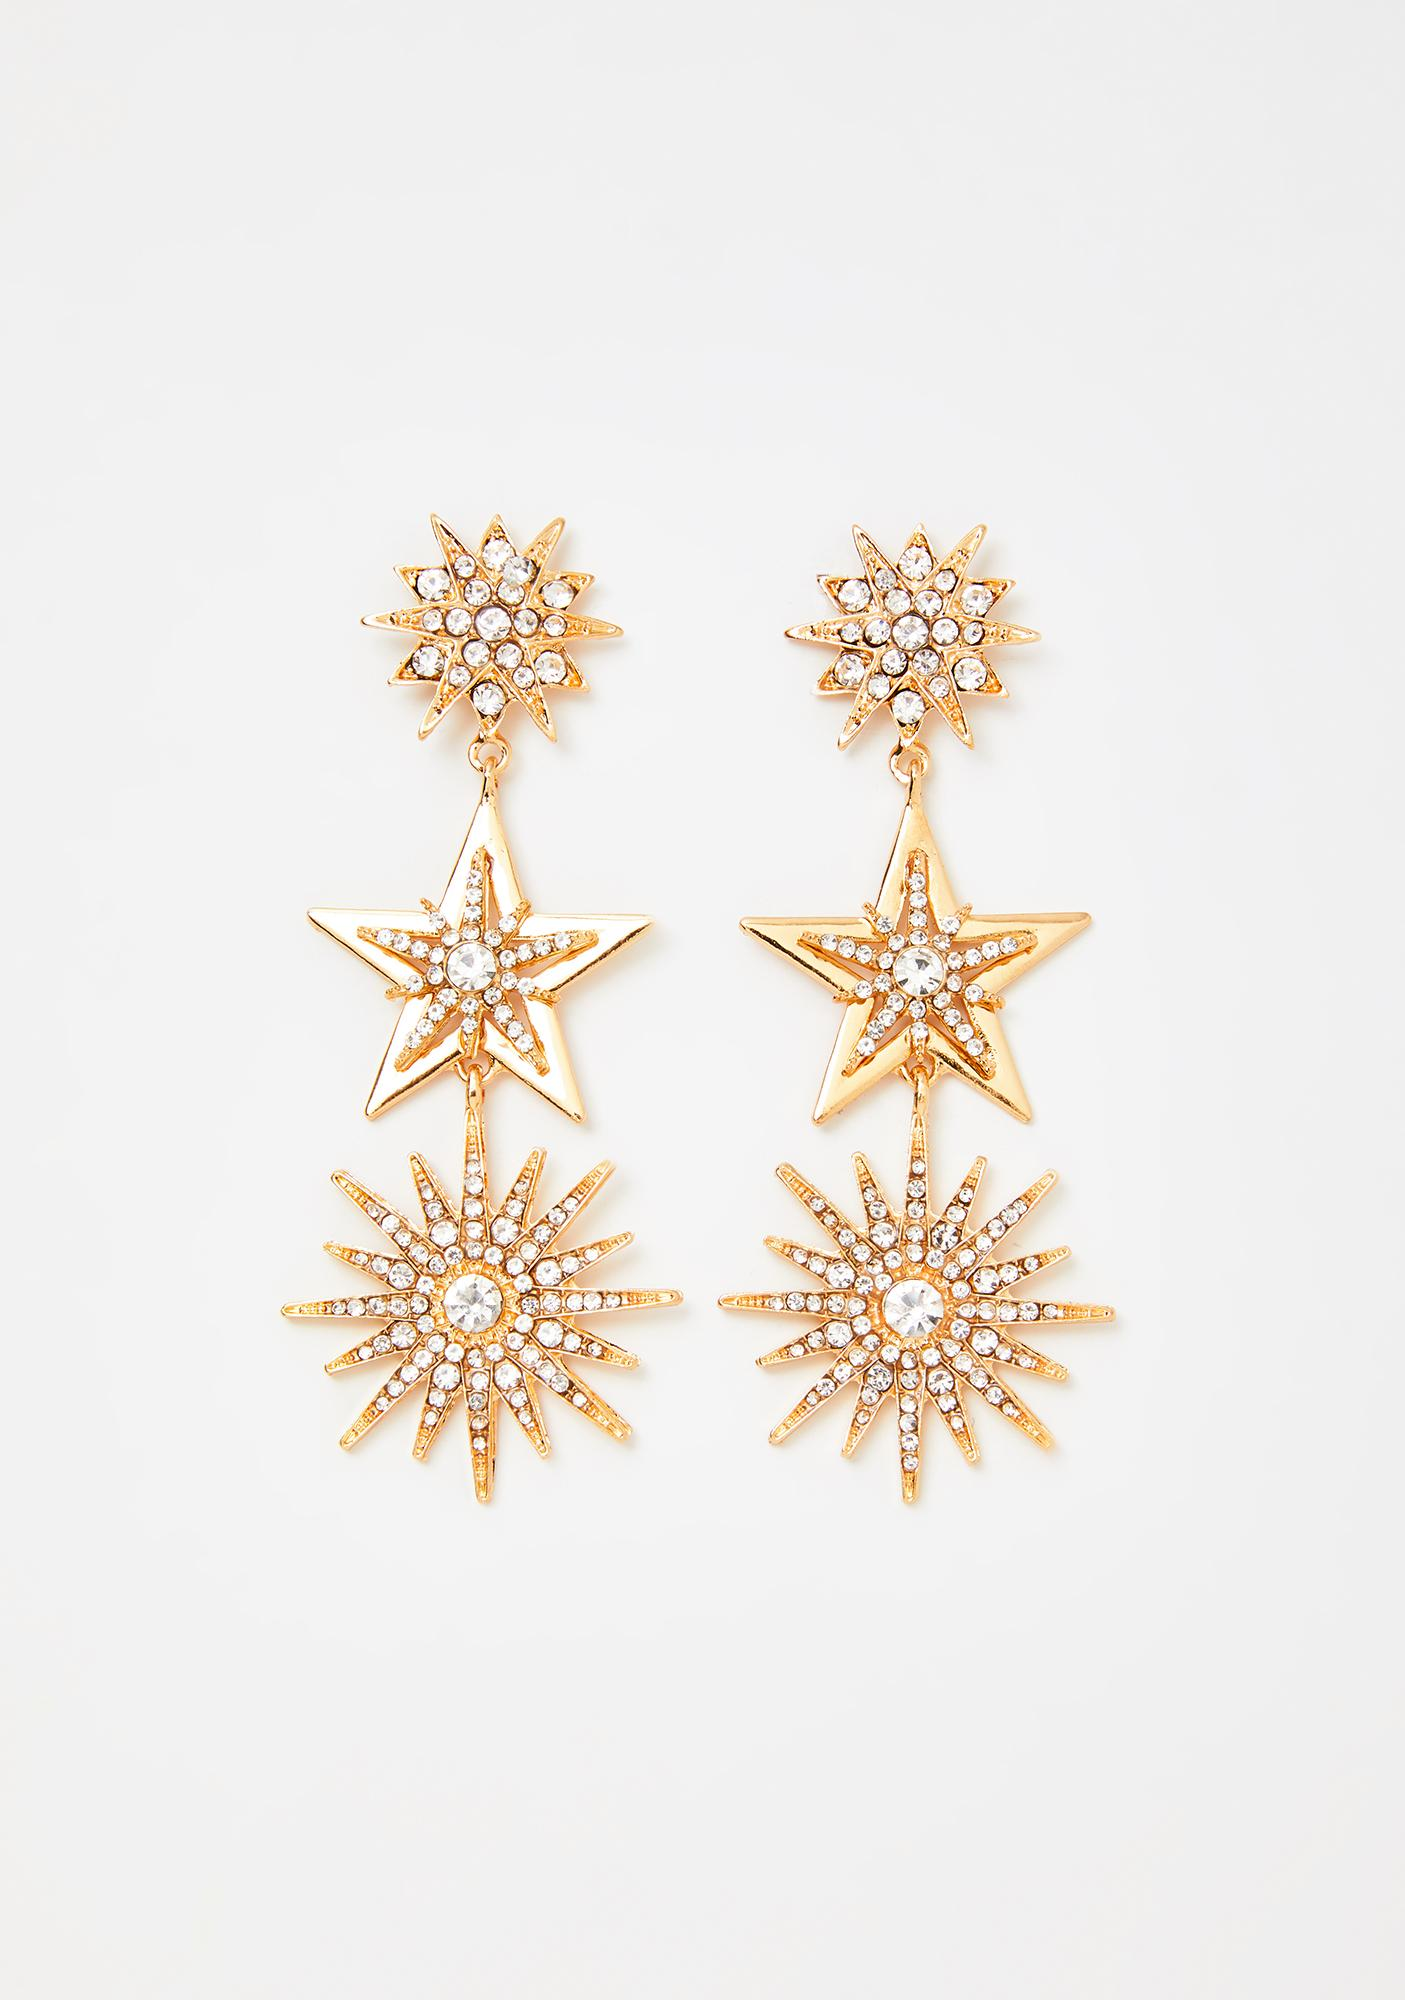 I'm Your Wish Star Earrings